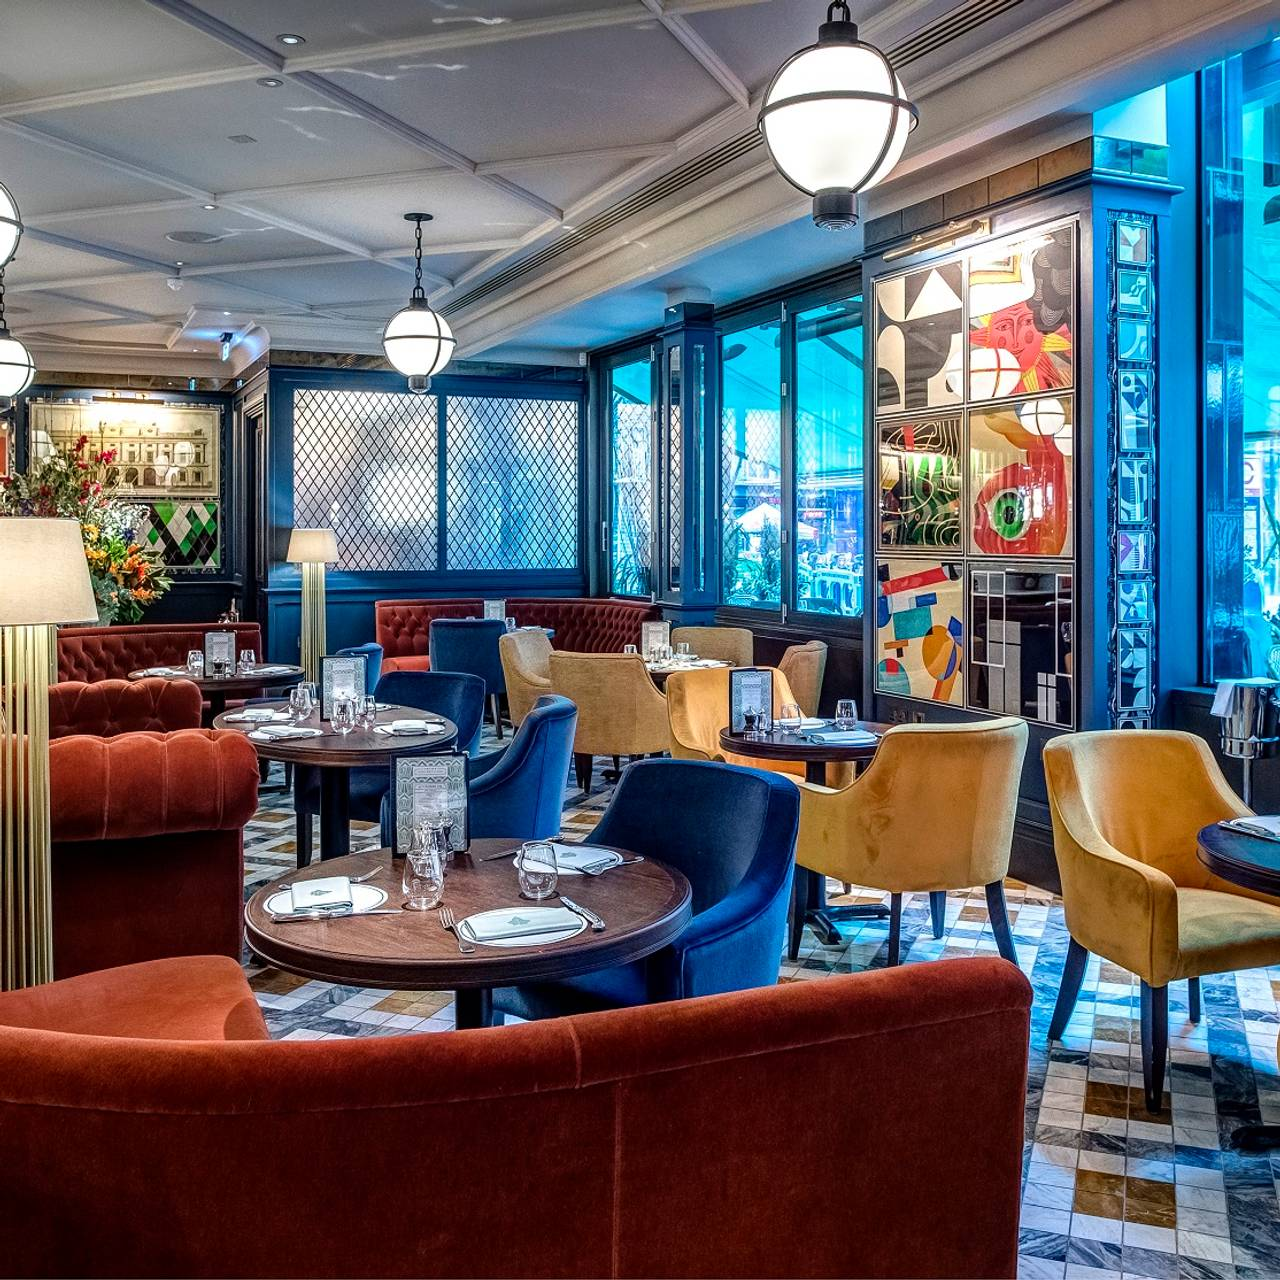 The Ivy Soho Brasserie - London, | OpenTable